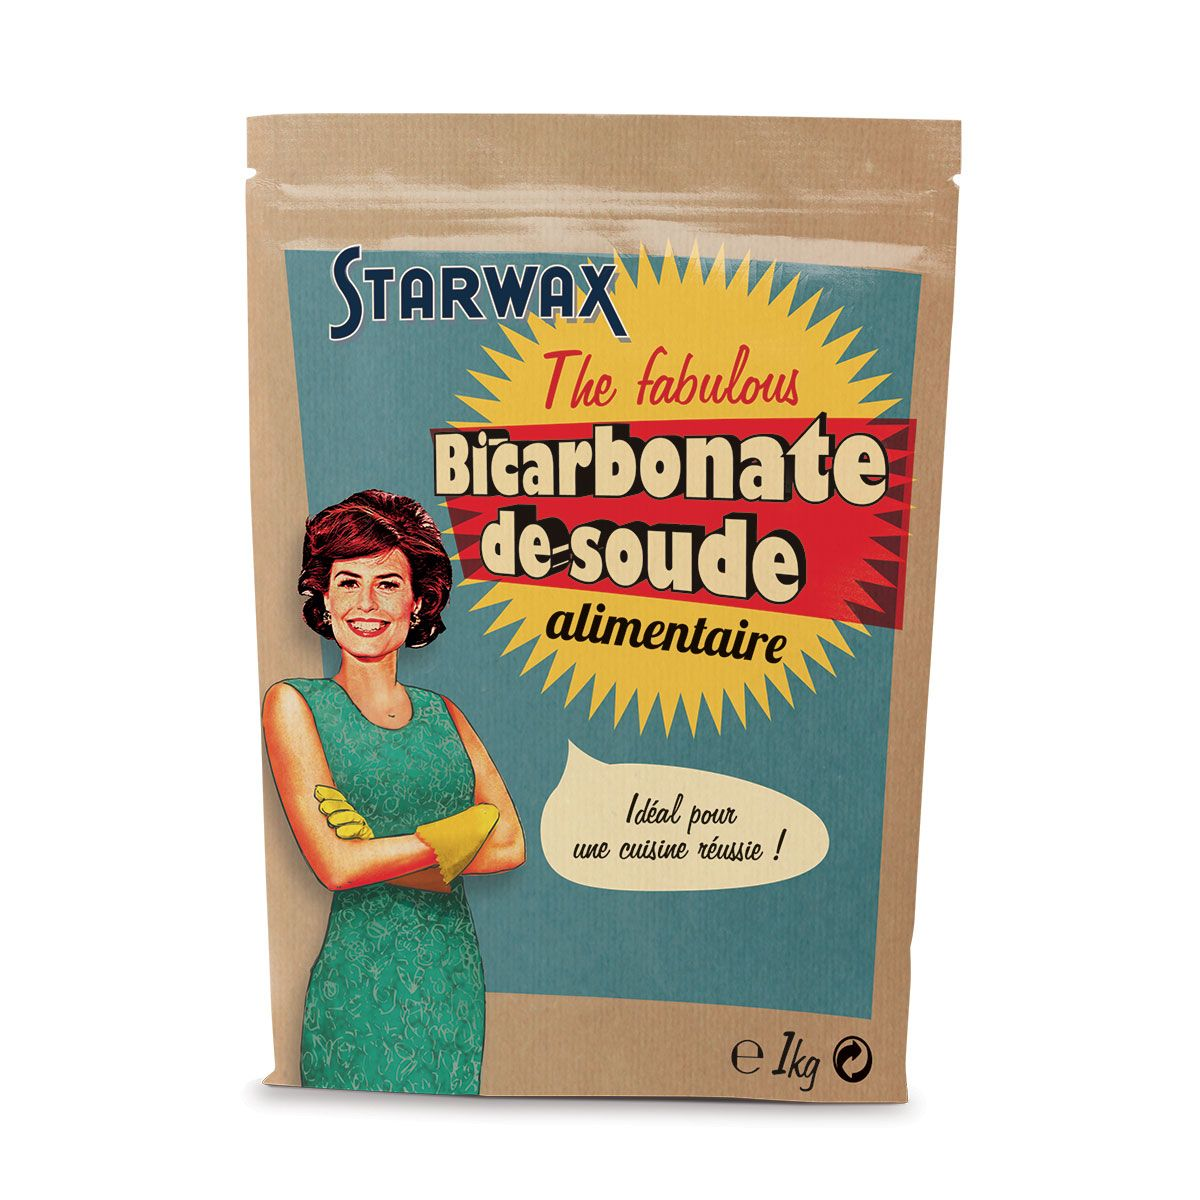 Bicarbonate de soude alimentaire - Starwax The Fabulous